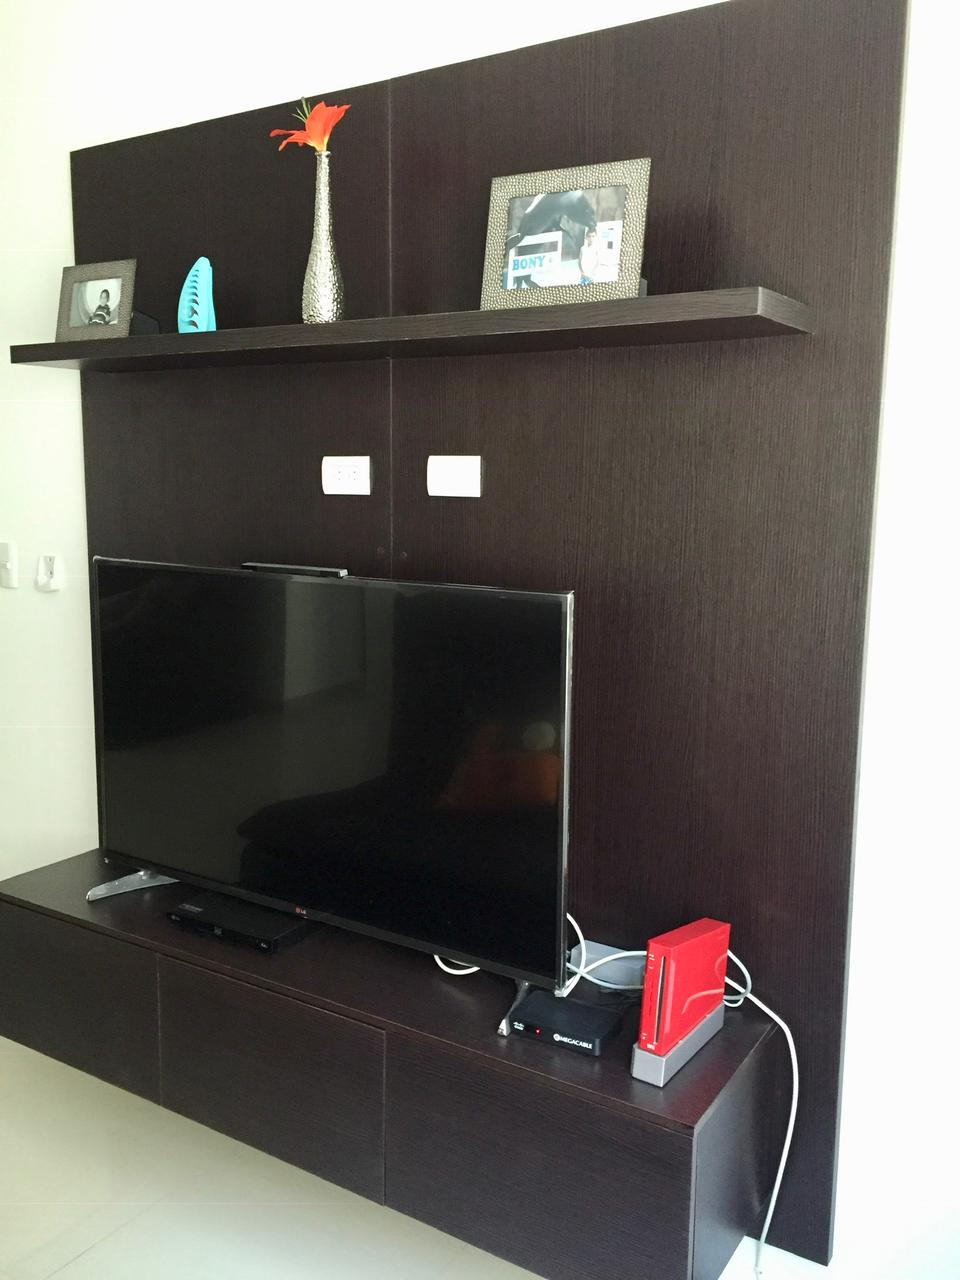 Smart TV with hook-ups for Megacable service.